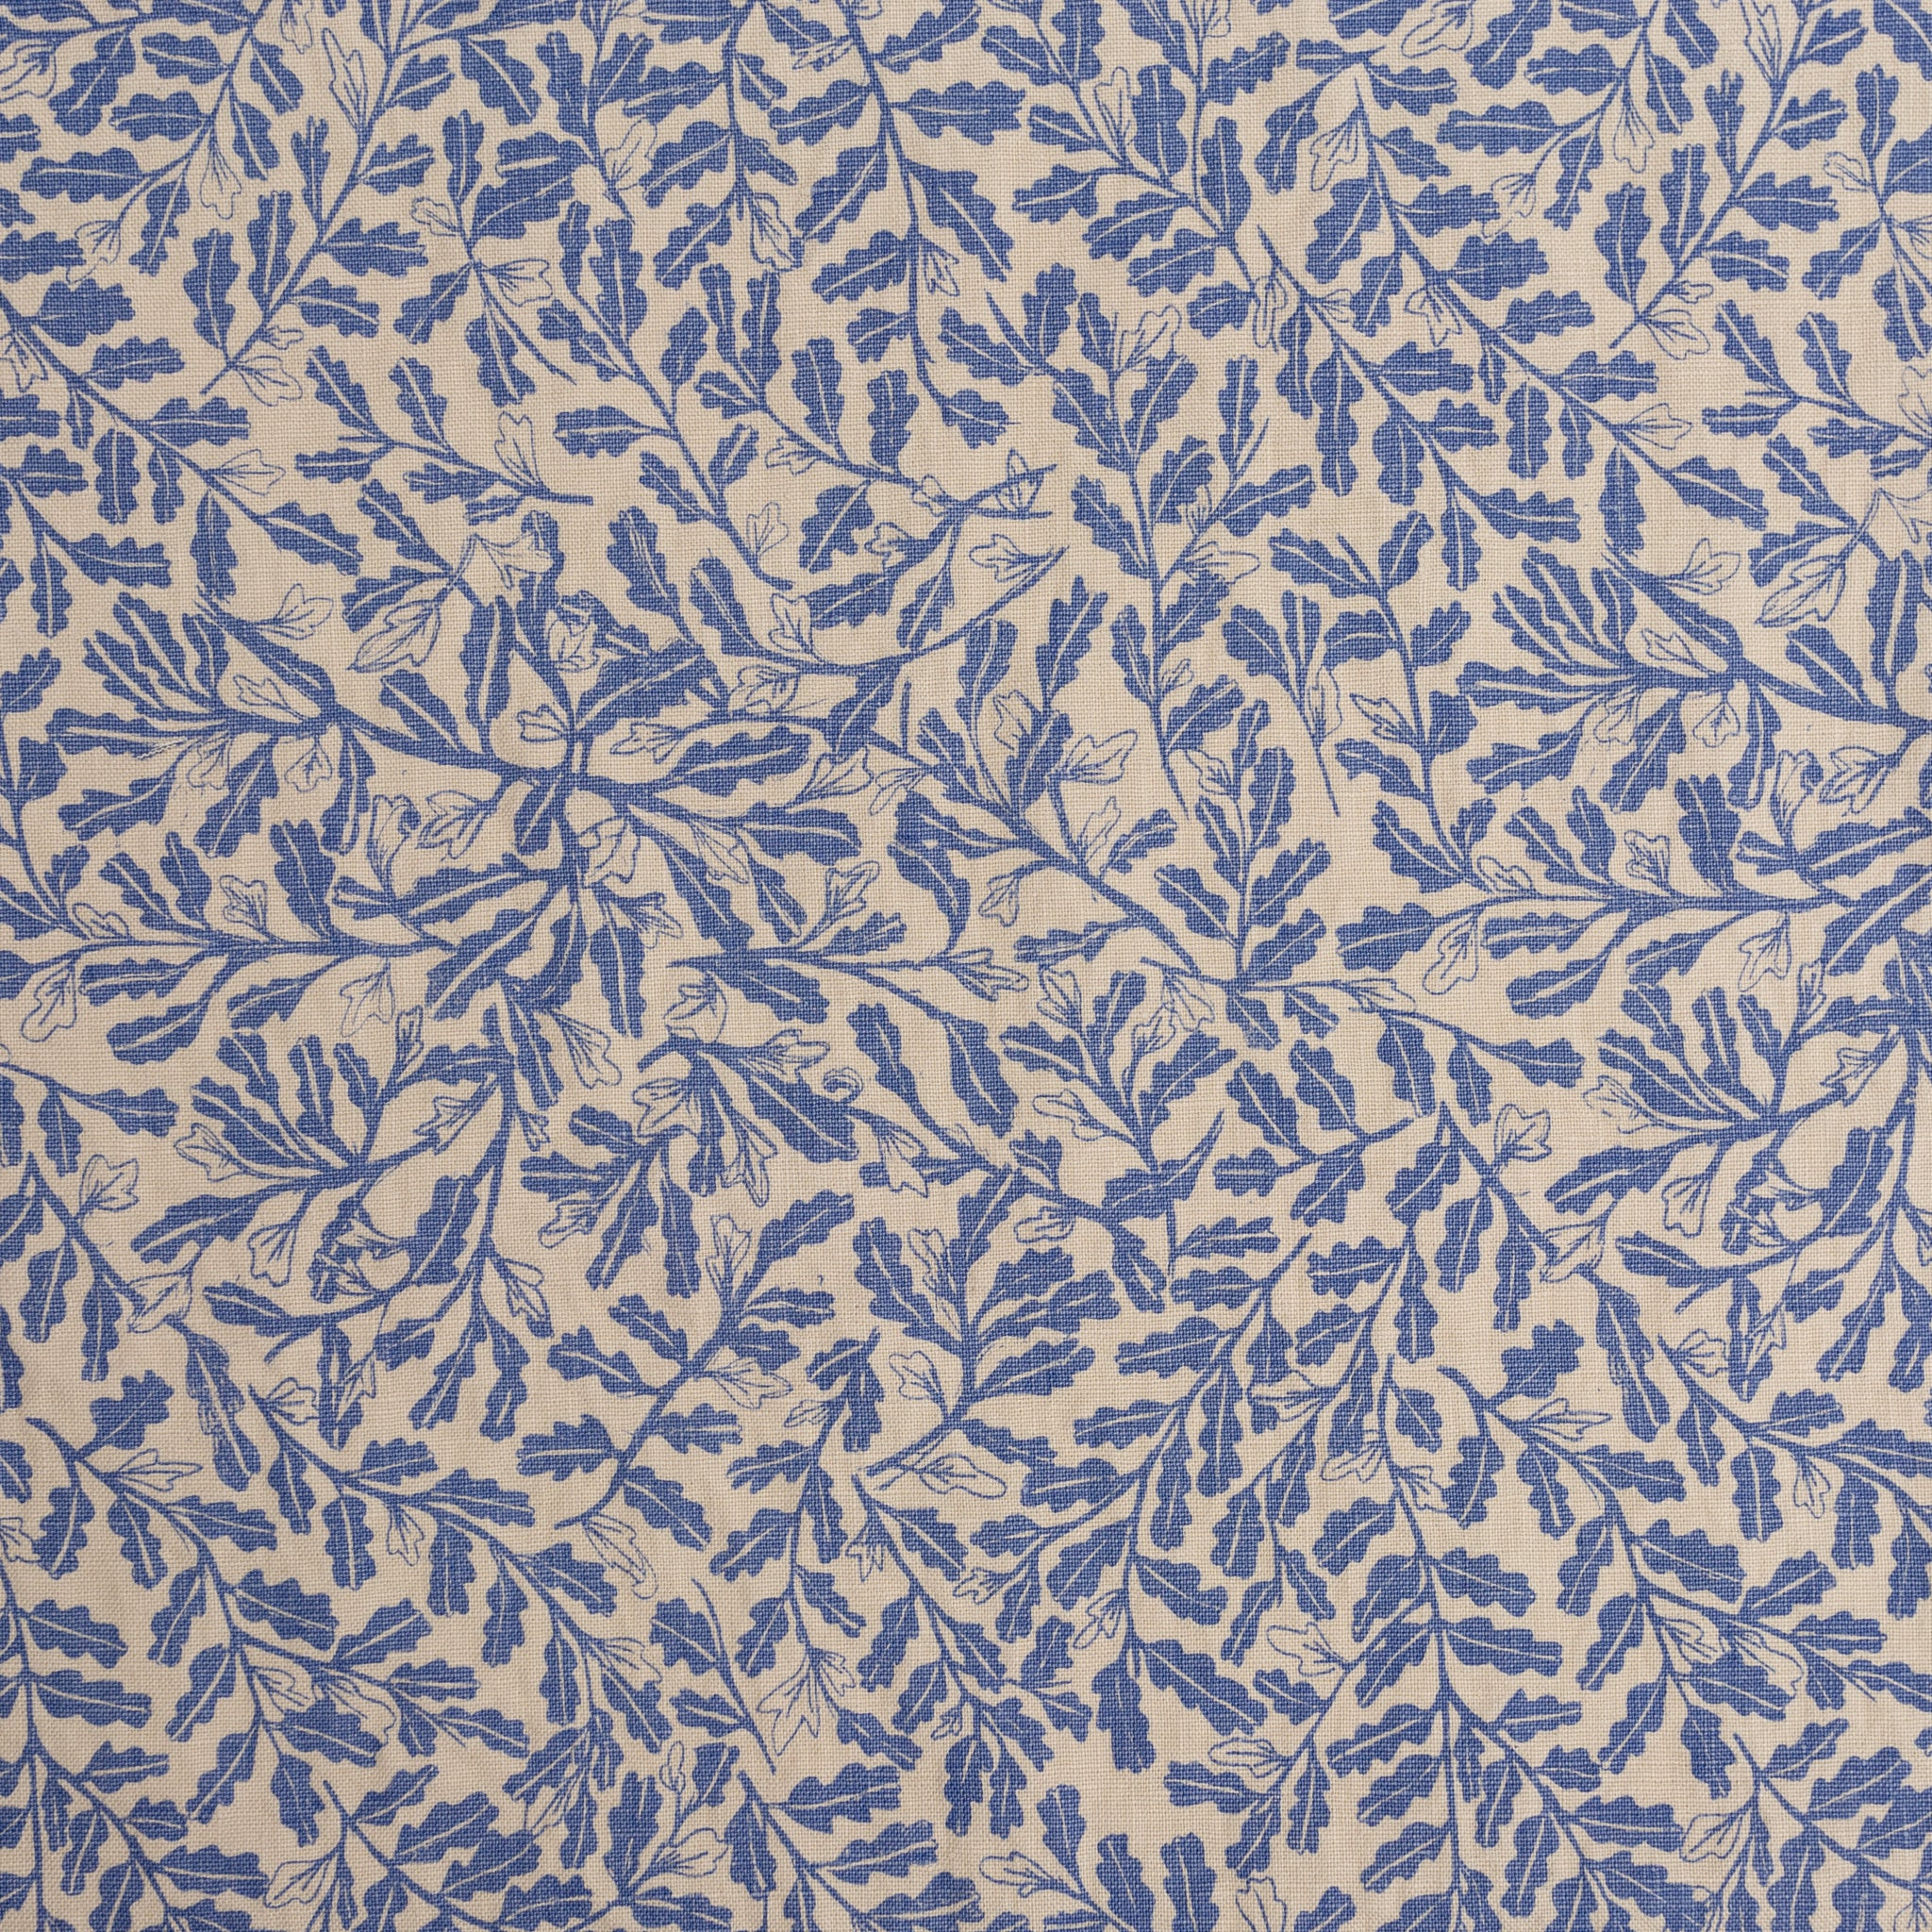 Parlor in Cornflower: 1/4 Yard (Linen)